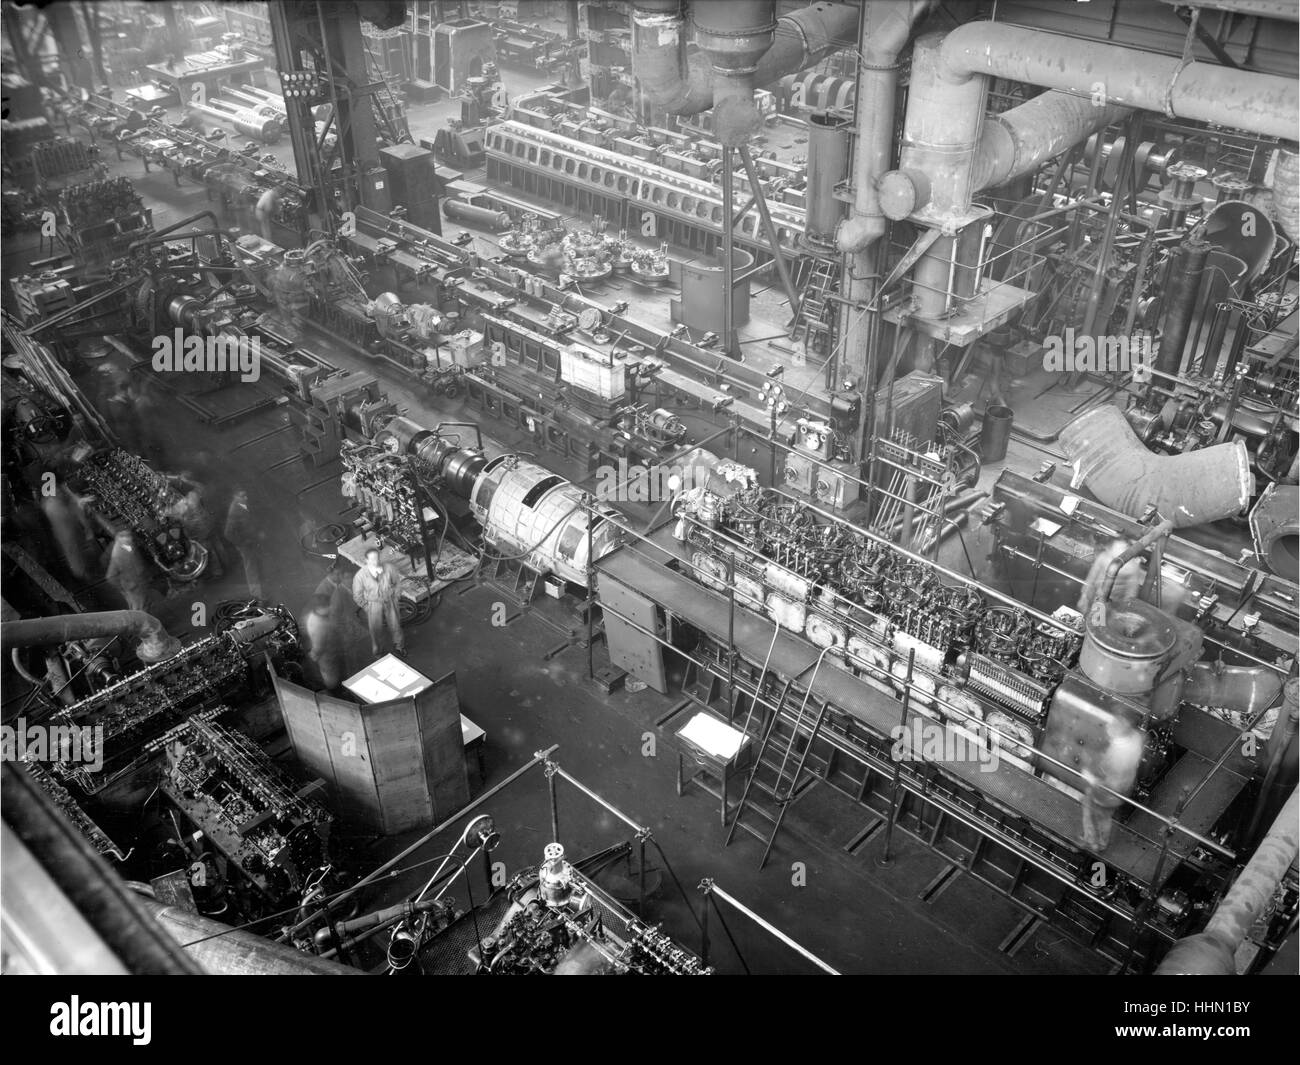 1930 - 40. Fiat - Ansaldo big motors Factory. - Stock Image